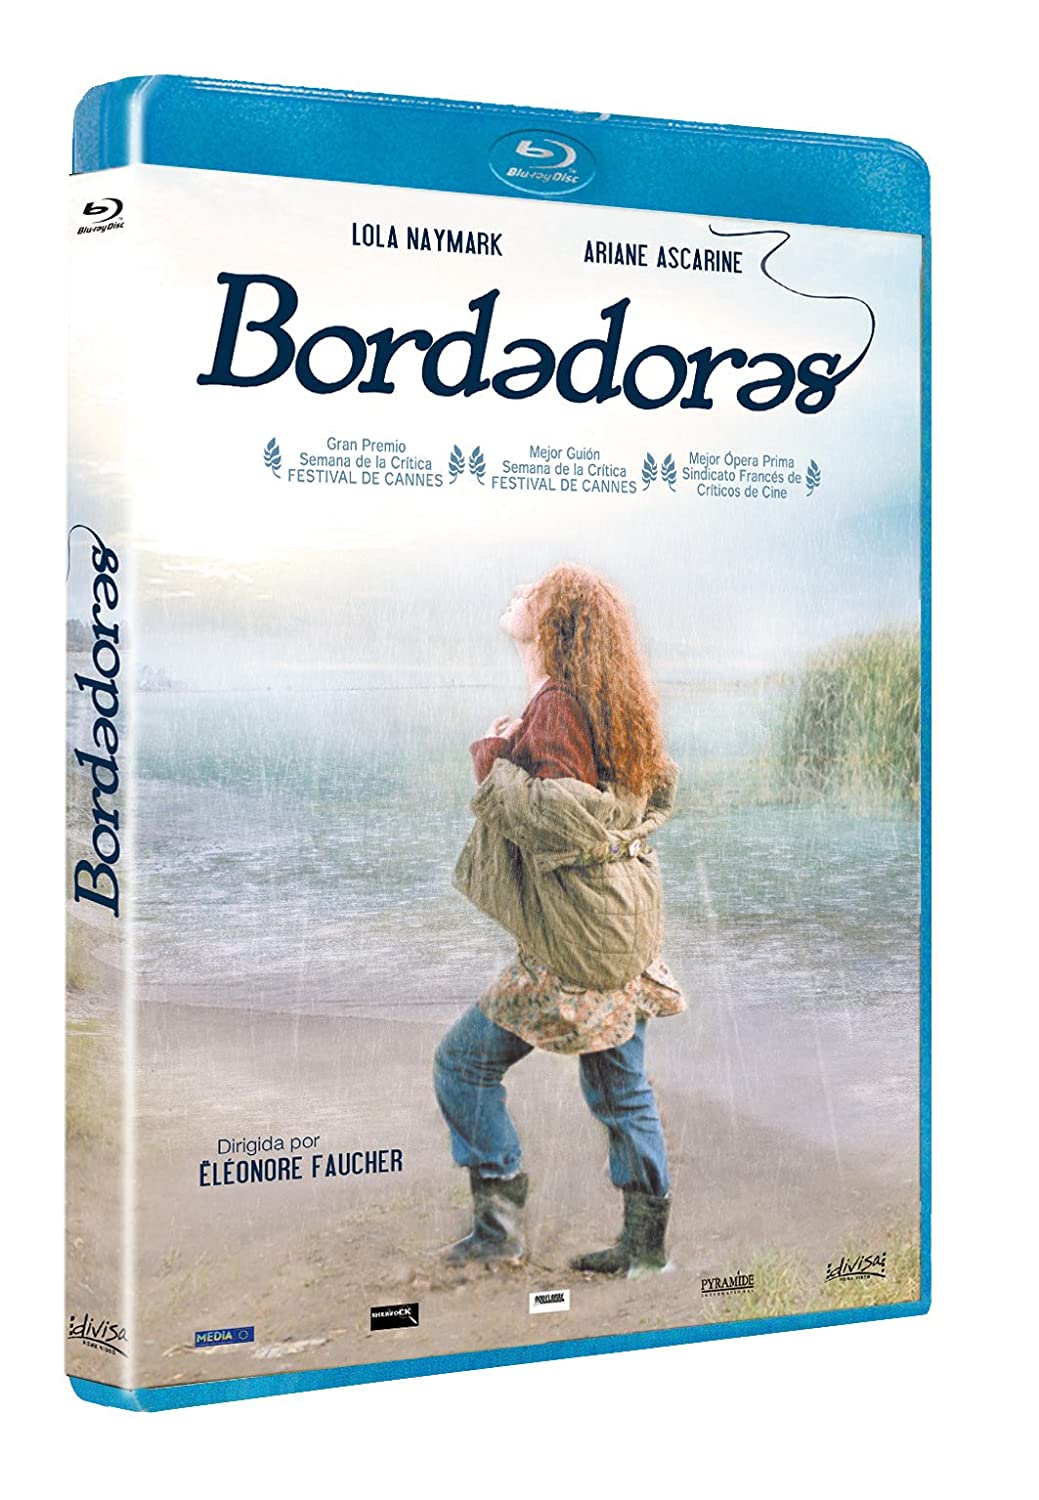 Amazon.com: Bordadoras (Blu-ray) (Import Movie) (European Format - Zone 2) [2004]: Movies & TV